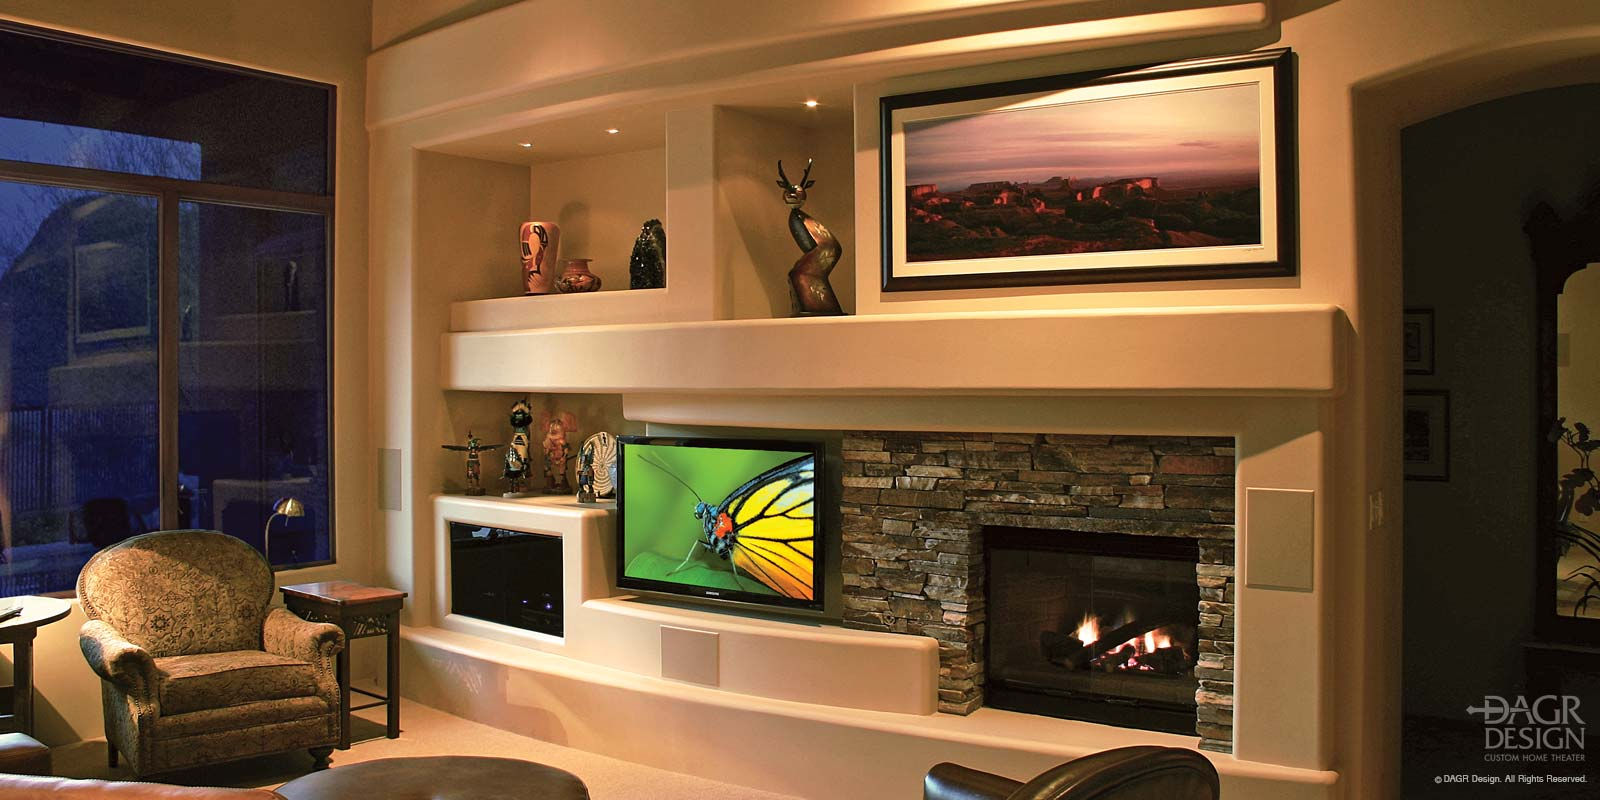 Custom home entertainment center fabricated in drywall with a curve design, stacked natural stone accents, lighted display niches, a floating panel LCD TV mount, and fireplace custom designed and installed by DAGR Design.